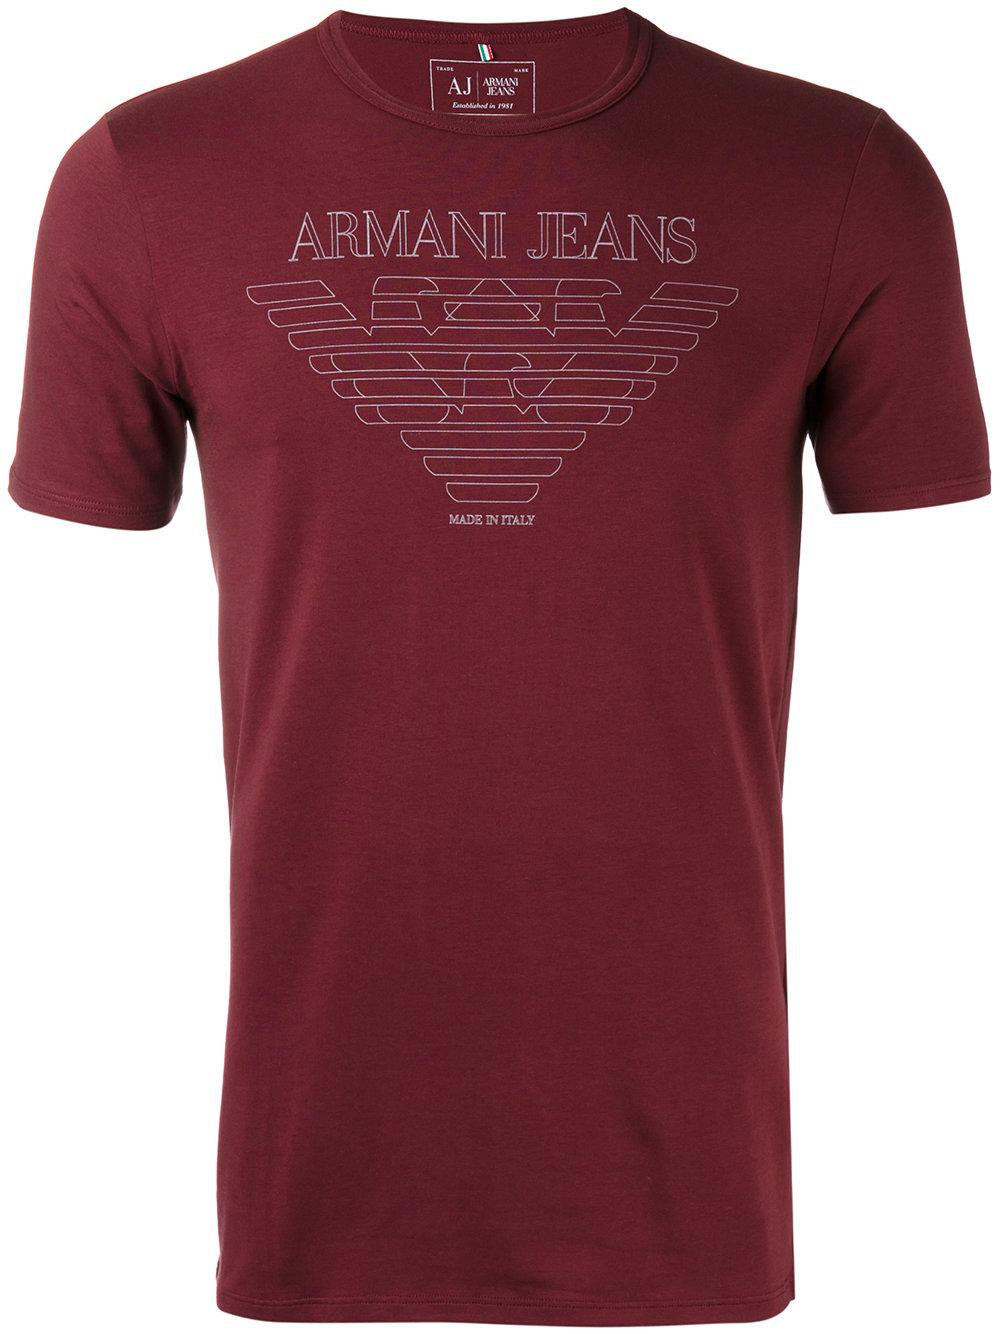 lyst armani jeans printed t shirt in red for men. Black Bedroom Furniture Sets. Home Design Ideas